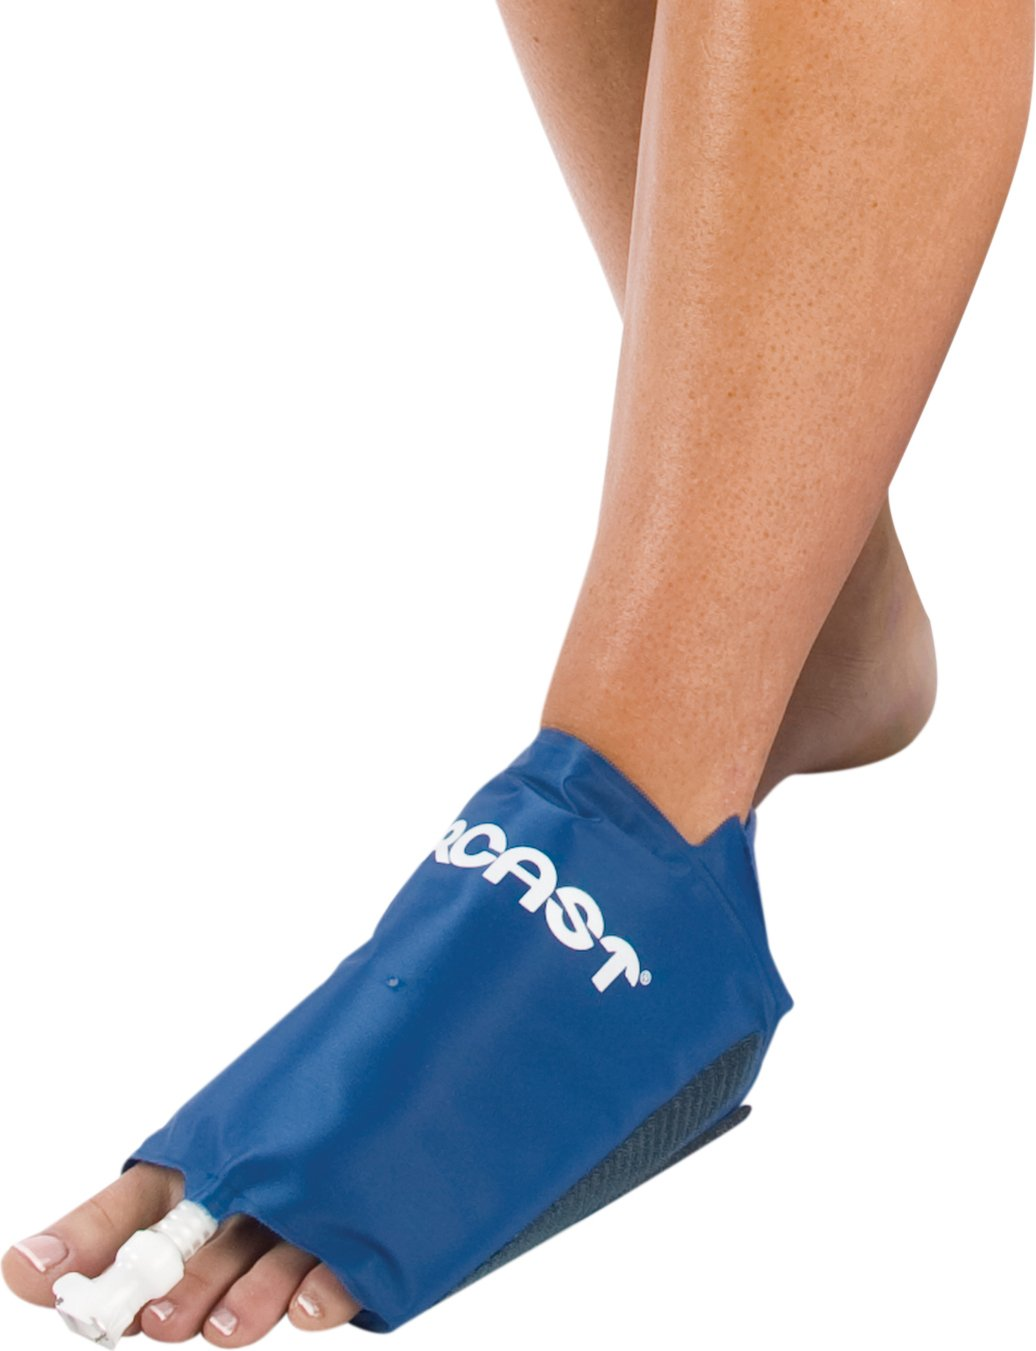 DonJoy Aircast Cryo/Cuff Cold Therapy: Foot Cryo/Cuff with Non-Motorized (Gravity-Fed) Cooler, Medium